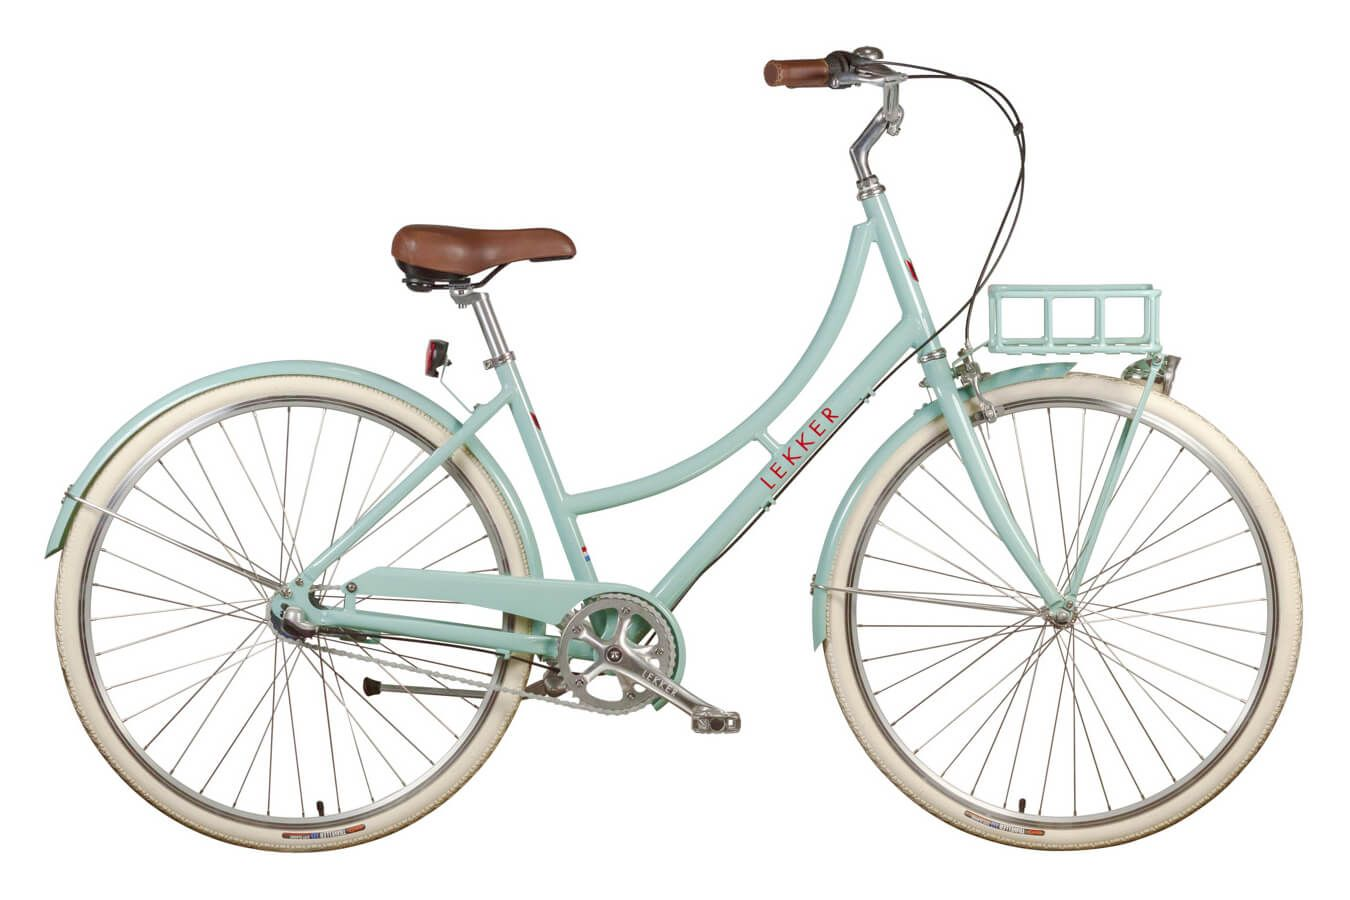 Ultieme En Stijlvolle Damesfiets Lekker Sportief Collectie Dutch Bike Womens Bike Vintage Bicycles